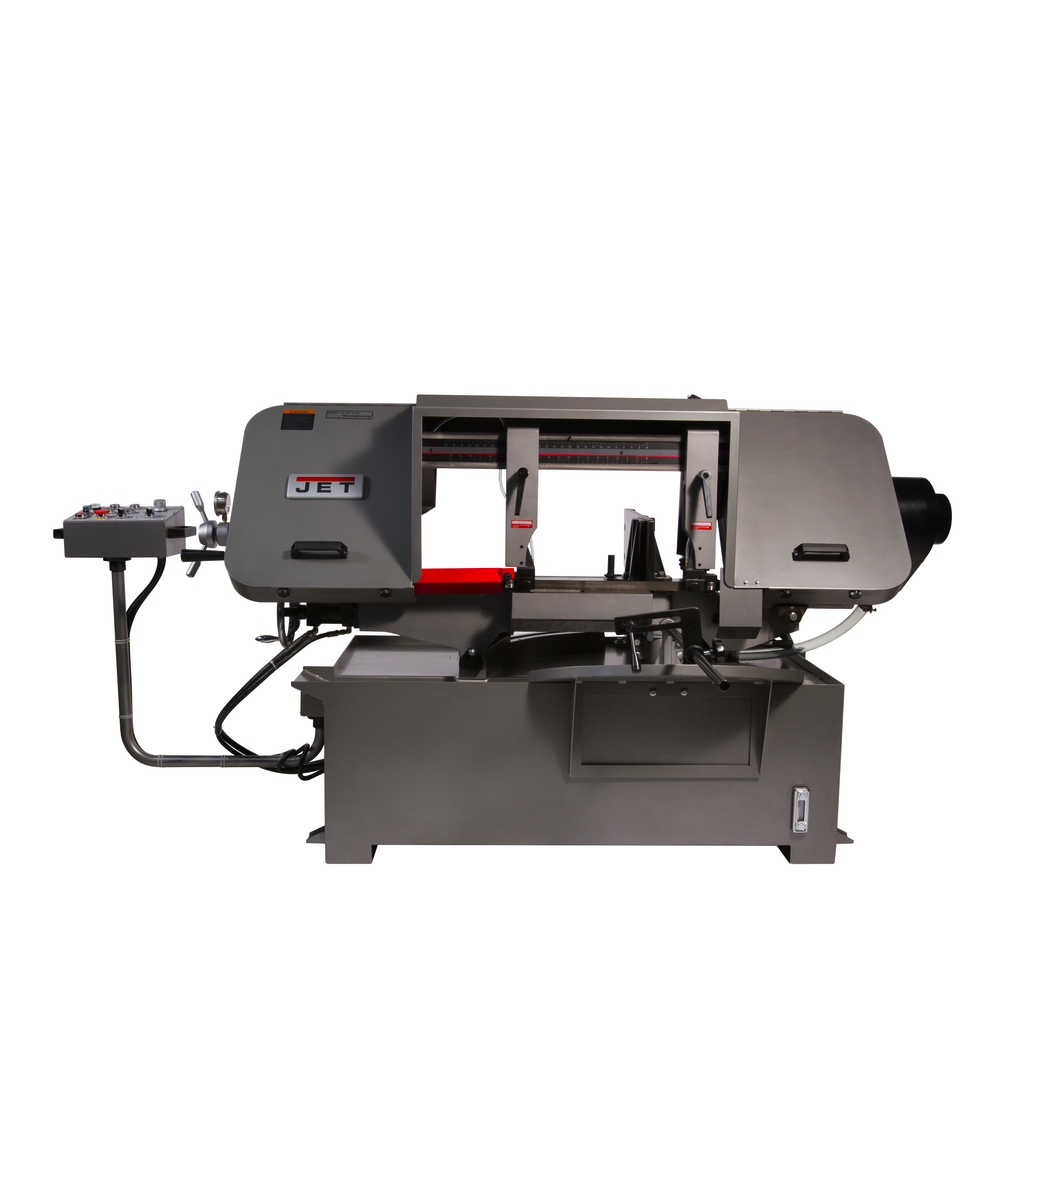 """HBS-1220MSAH, 12"""" x 20"""" Semi-Automatic Mitering Variable Speed Bandsaw with Hydraulic Vise"""